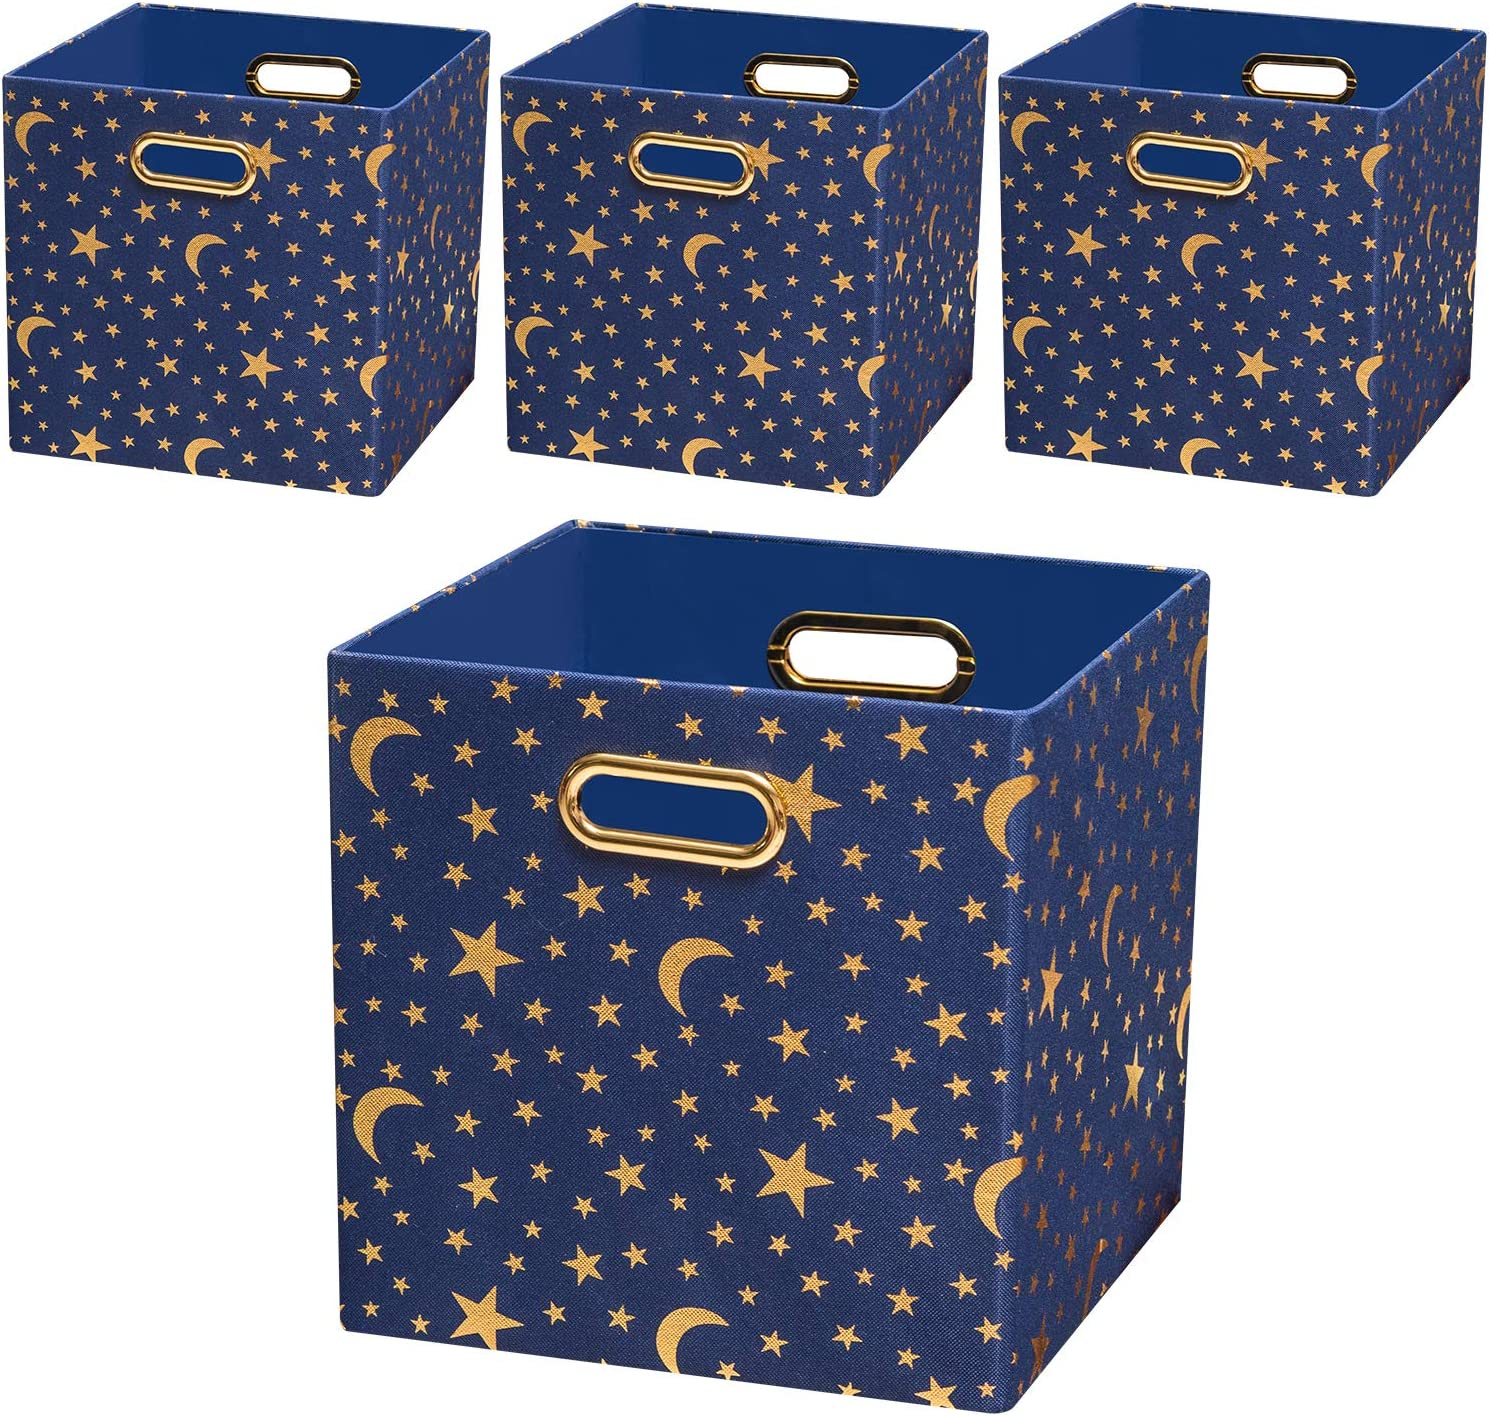 Posprica Storage Cubes,11×11 Storage Bins Boxes Basket Containers Drawers for Nurseries,Kid's Toys (Set of 4, Stars)